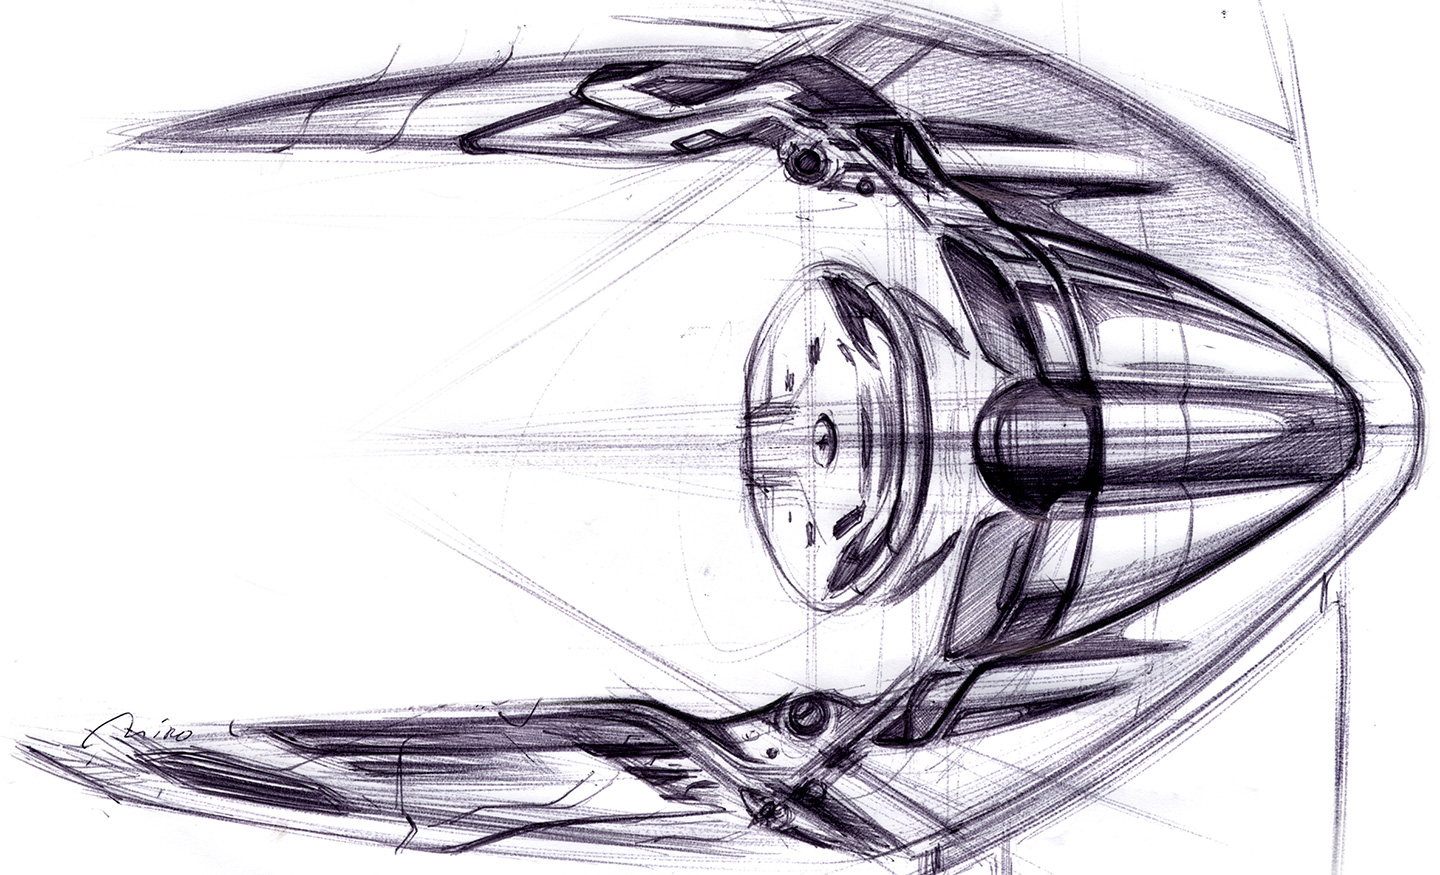 Ferrari 458-Interior Design Sketch by Miroslav Dimitrov